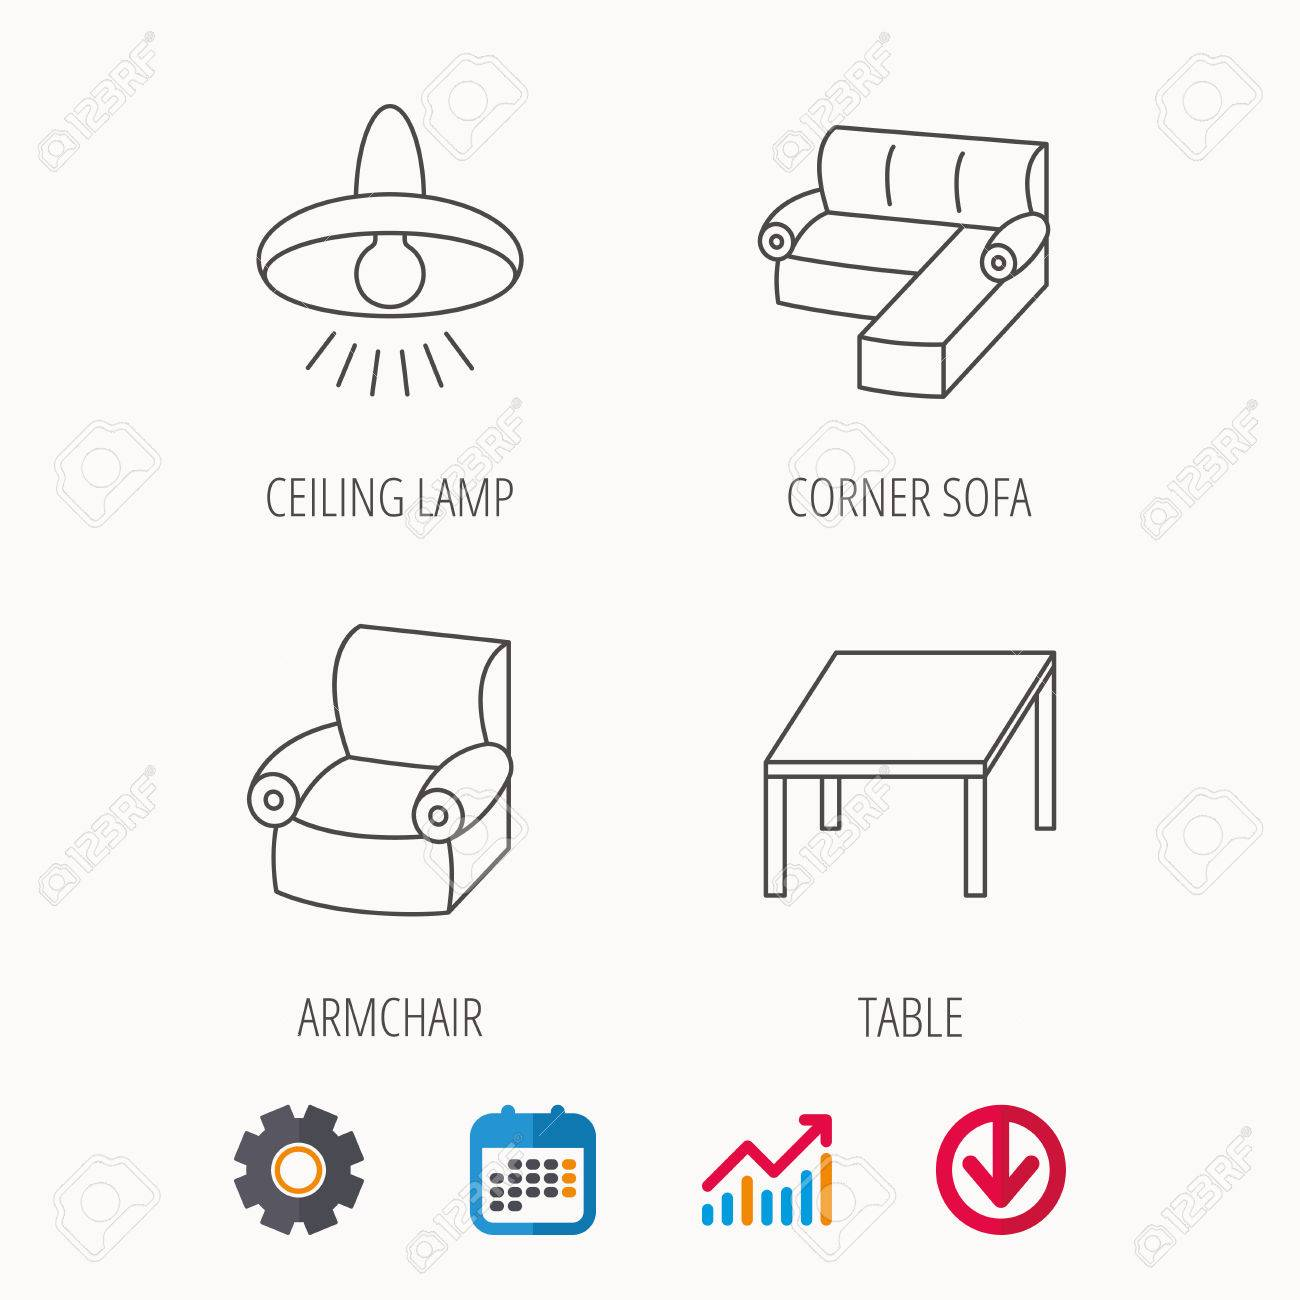 Corner Sofa Table And Armchair Icons Ceiling Lamp Linear Signs